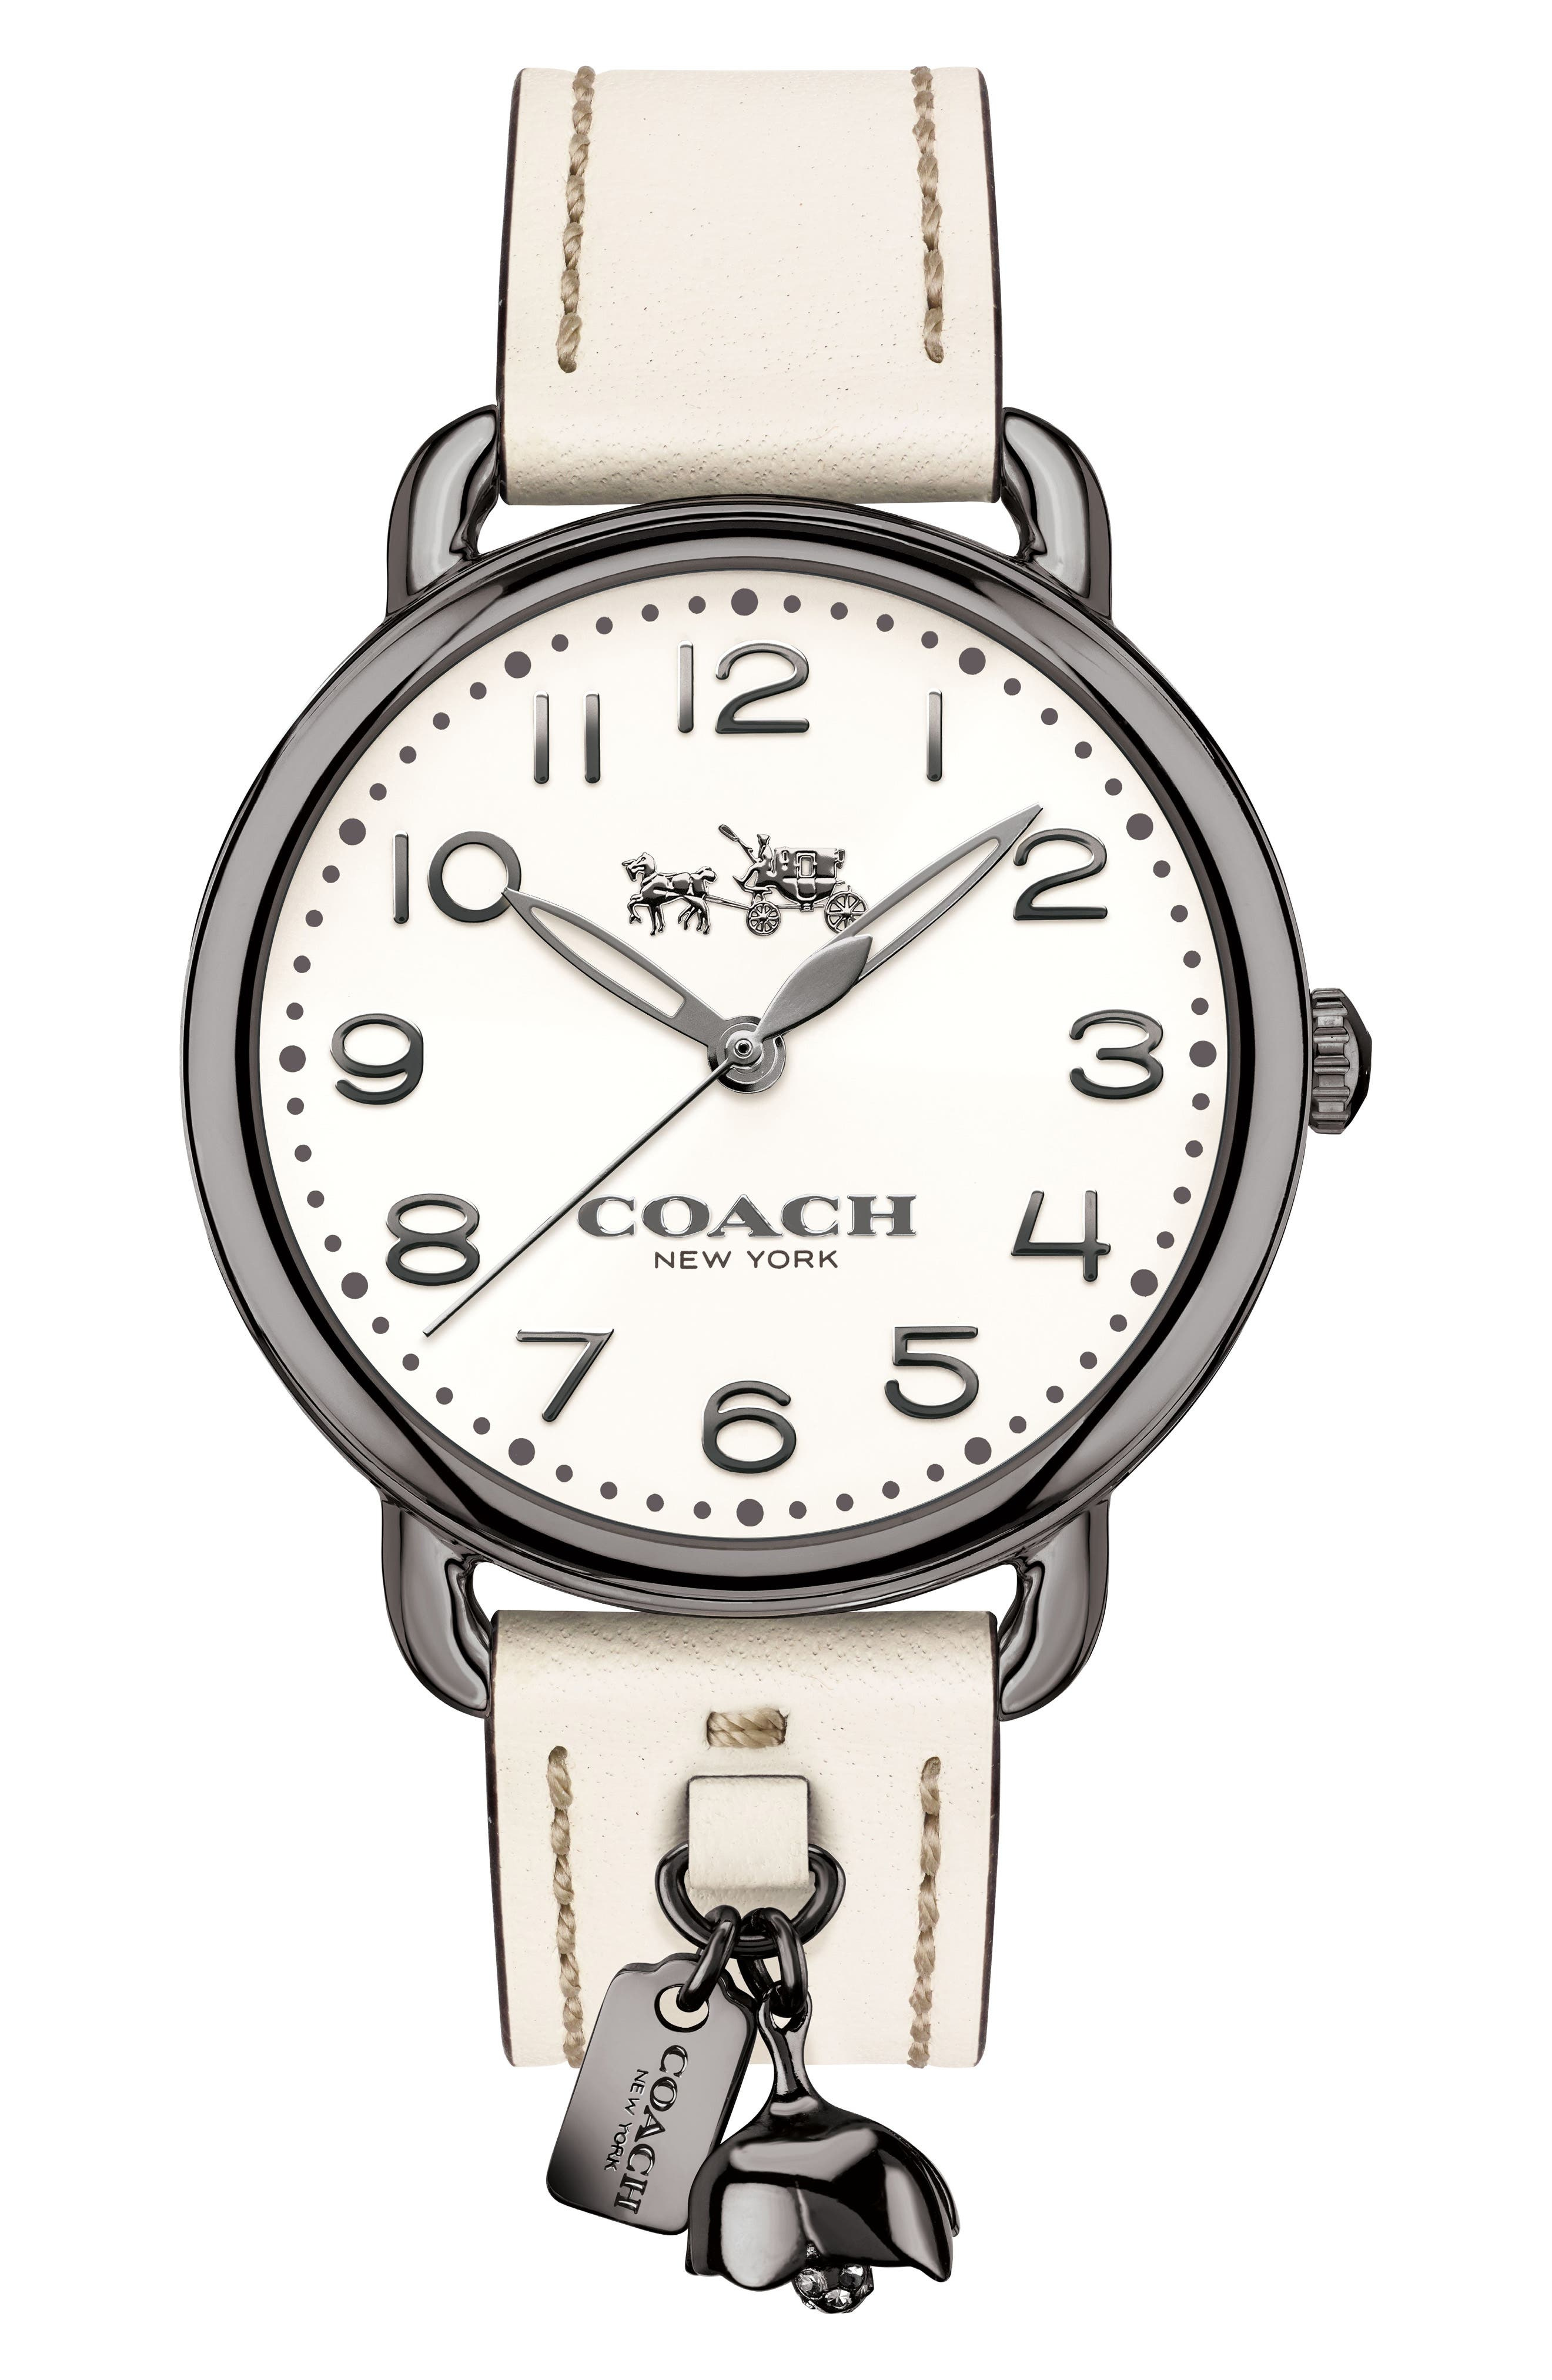 COACH,                             Delancey Leather Strap Watch, 36mm,                             Main thumbnail 1, color,                             110